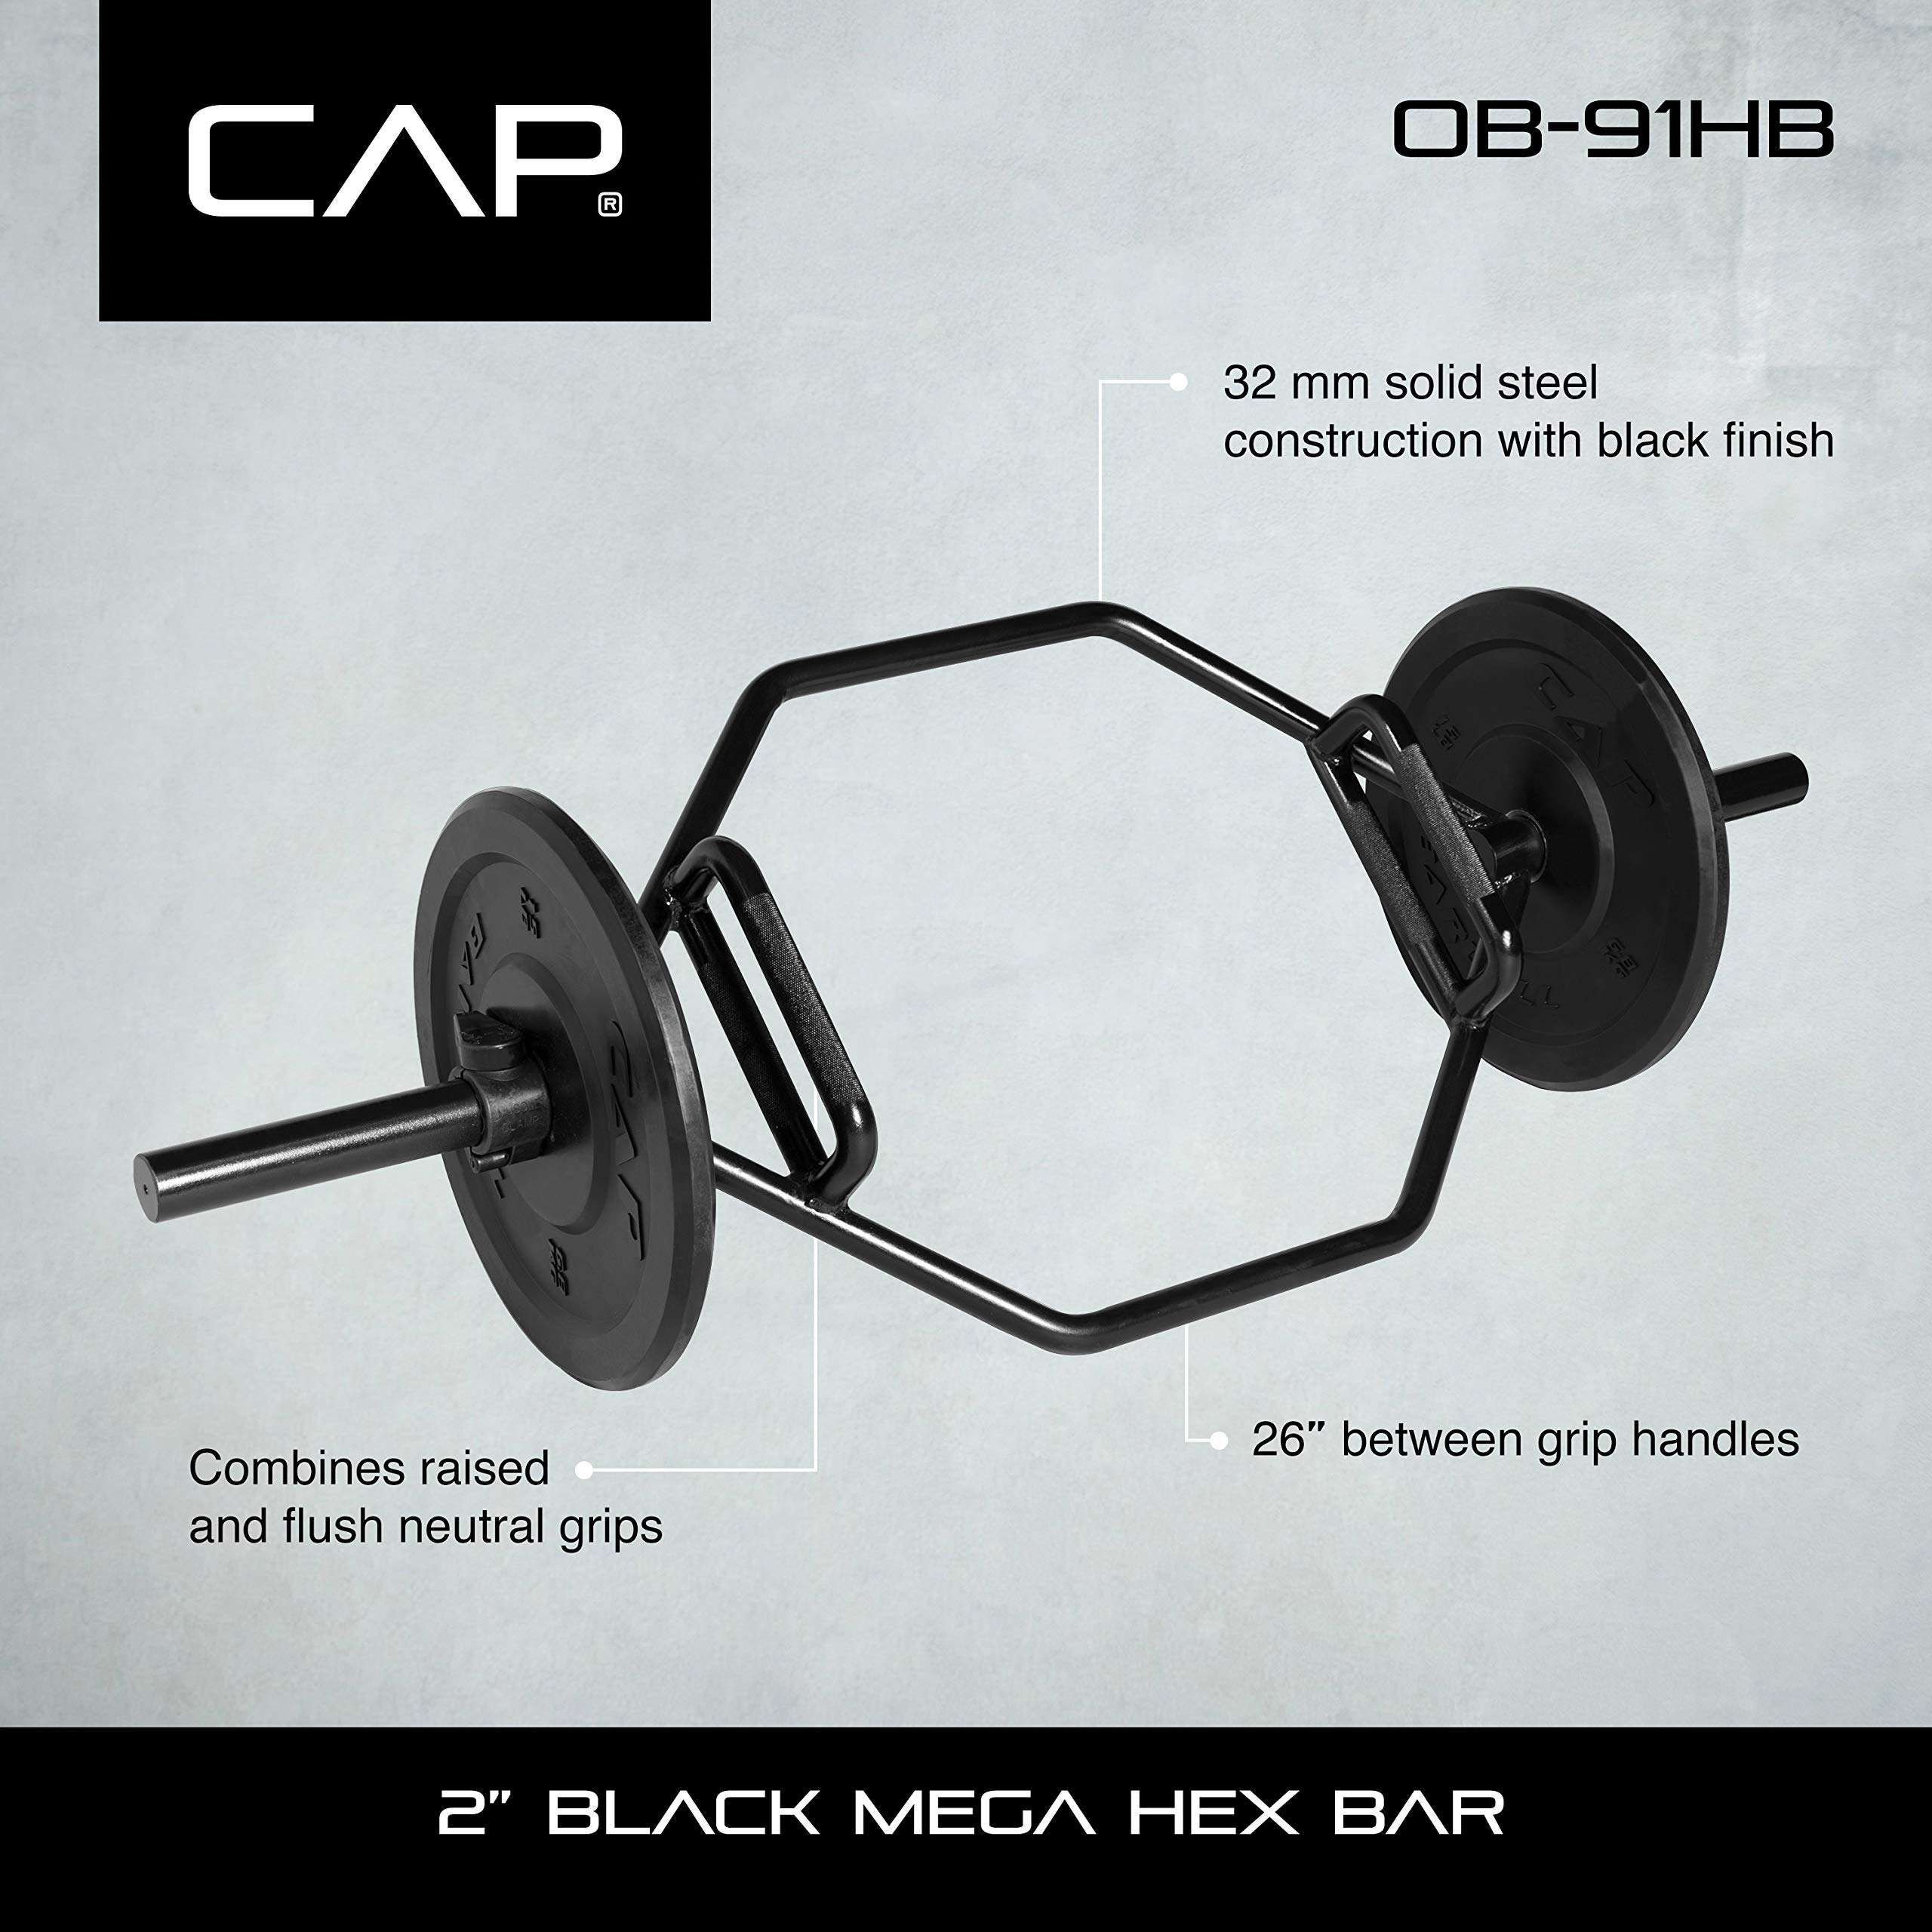 CAP Barbell OB-91HB Cap Mega Olympic Trap Bar, Shrug Bar, Hex Bar with Combo Neutral Grips and Black Finish, Black, Combo Neutral Grips by CAP Barbell (Image #5)